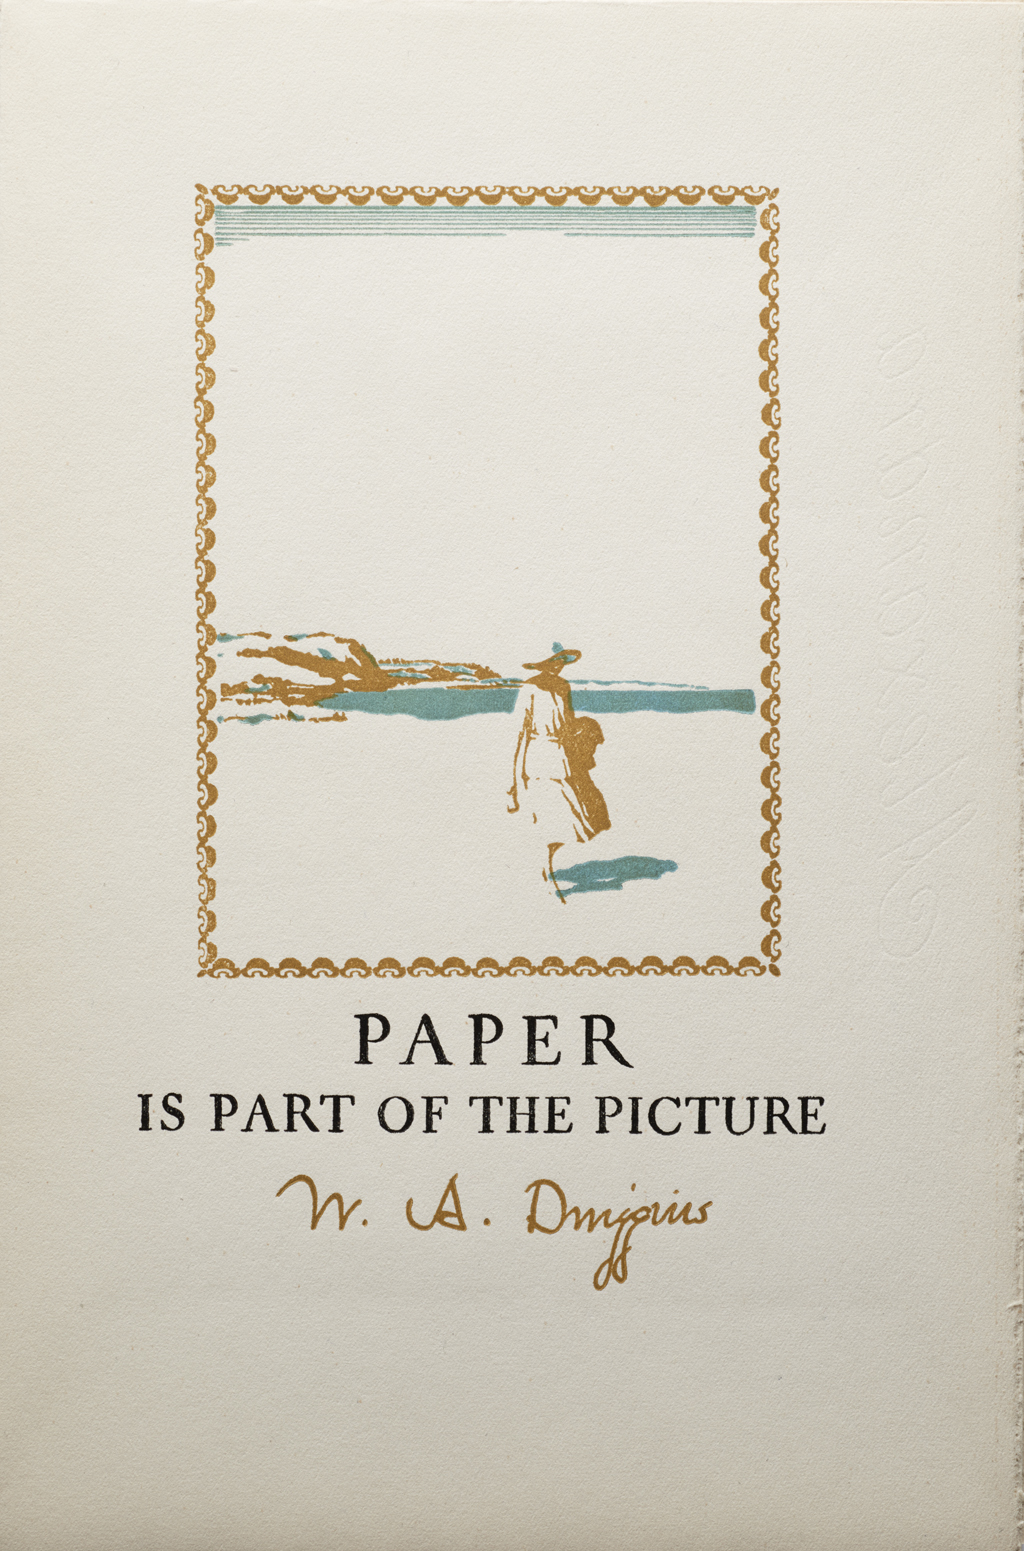 Paper Is Part of the Picture cover (Strathmore Paper Co., 1923). Design by W.A. Dwiggins. Photograph by Annie Schlechter.